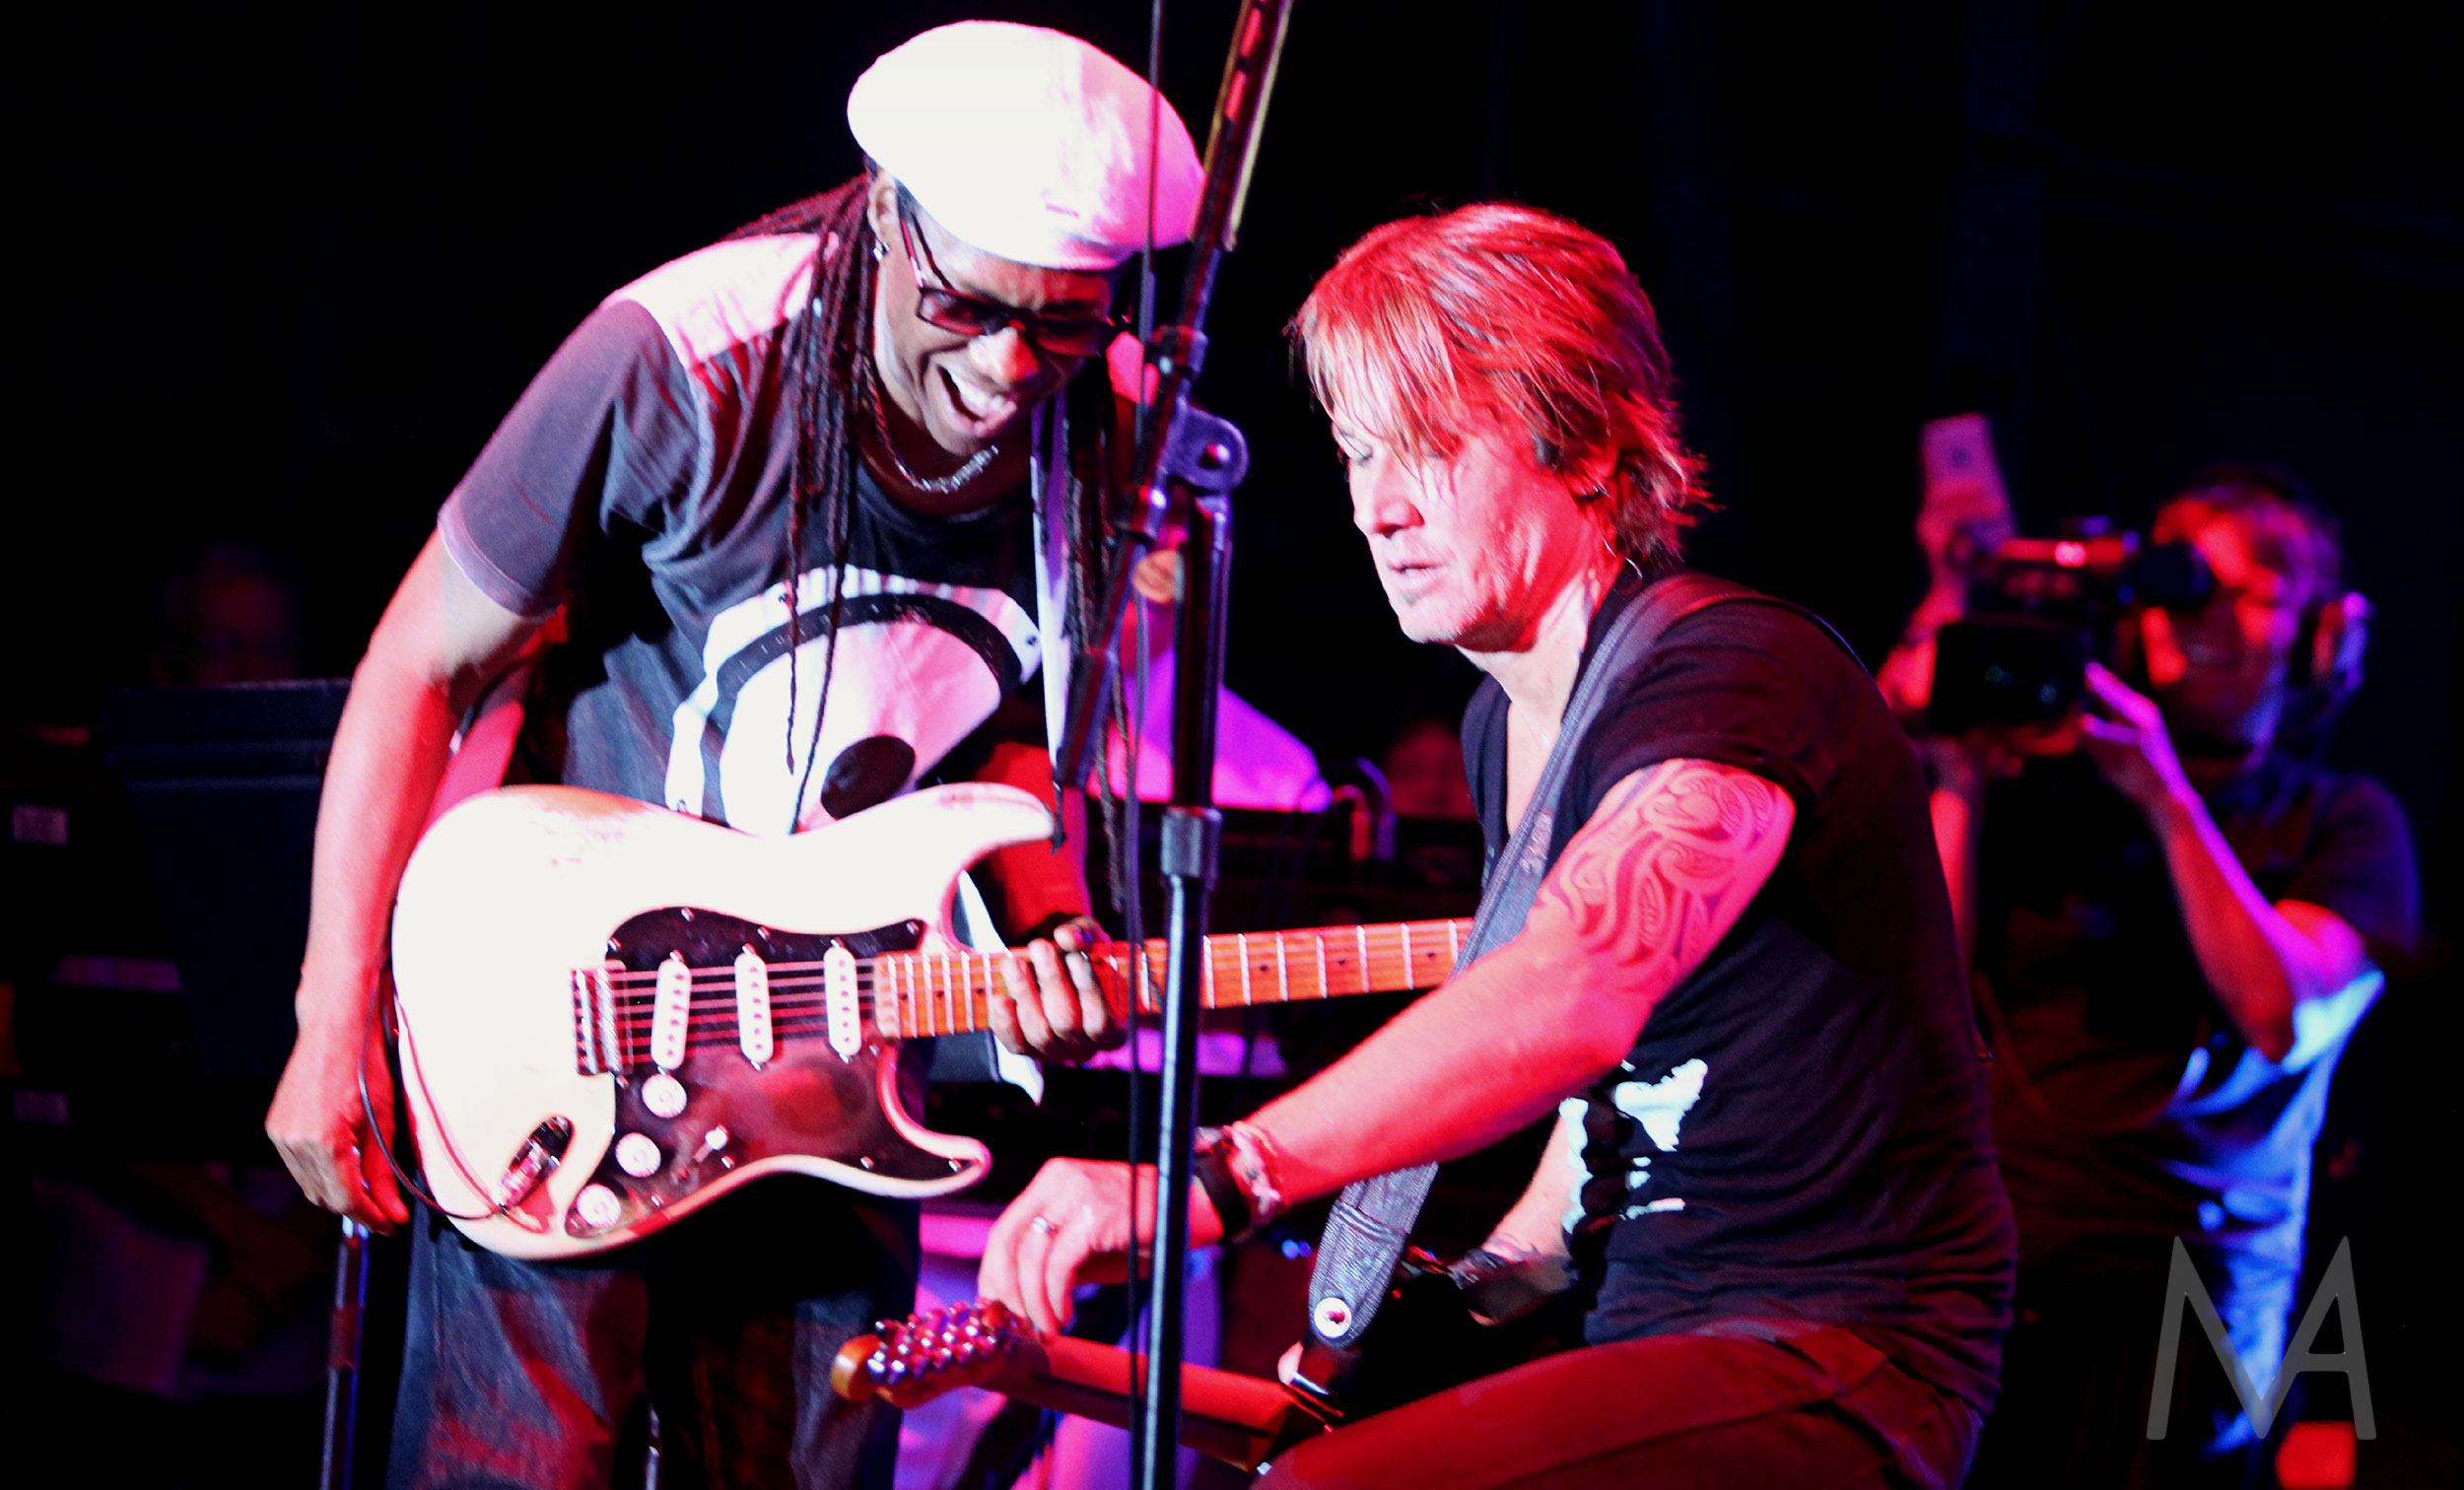 Nile Rodgers and Keith Urban